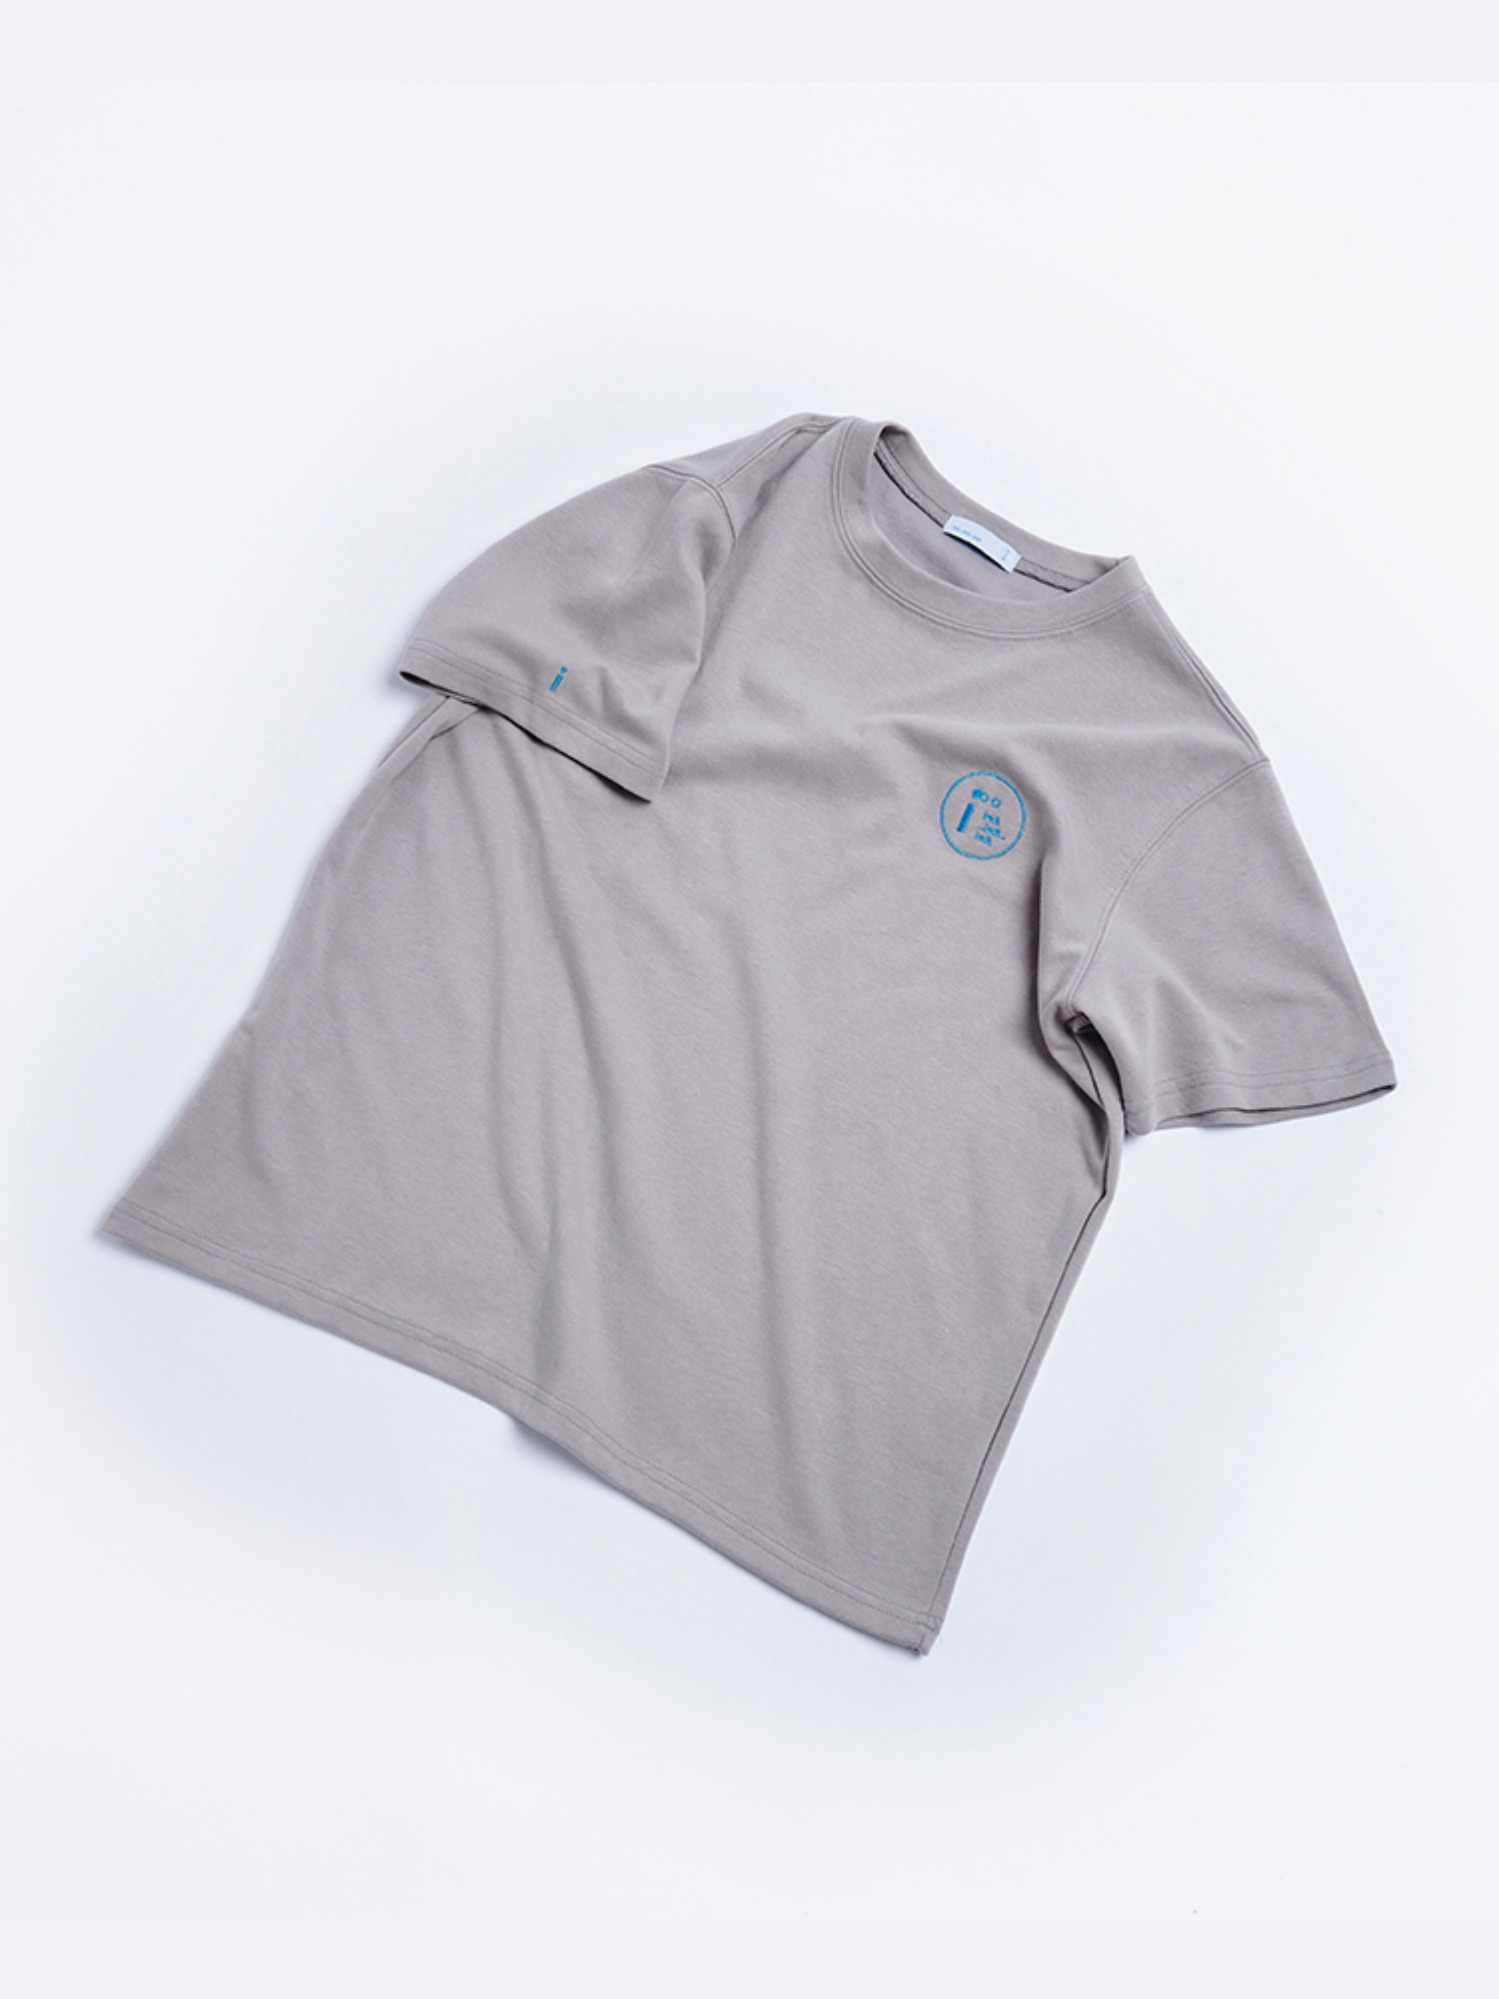 Stitch inch T shirt (Cool Gray)